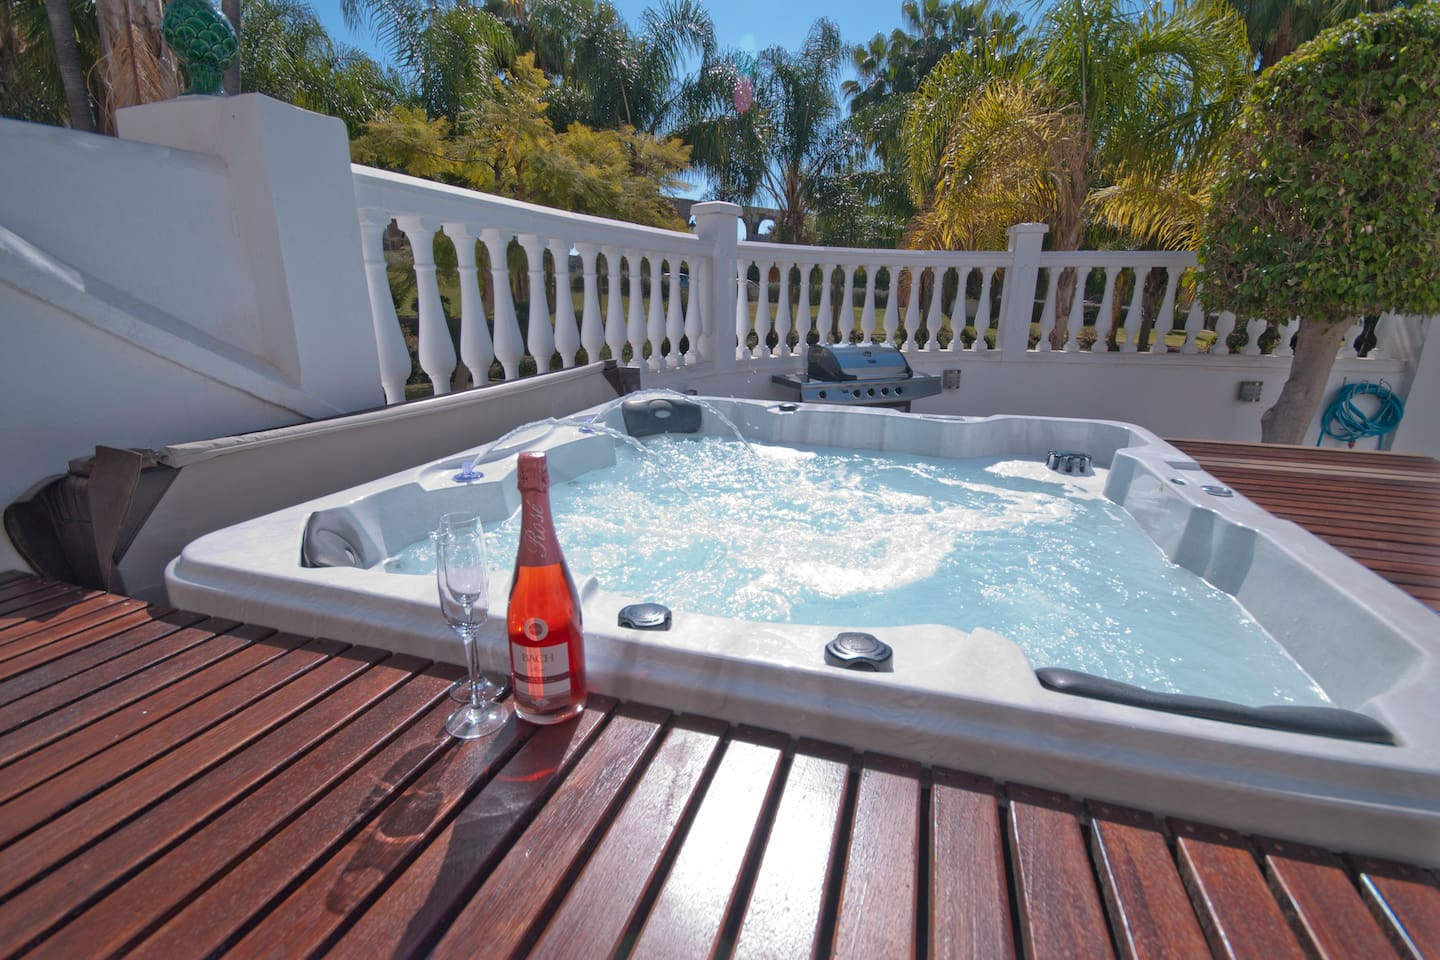 Nerja Luxury! Modern Apartment with Jacuzzi - Condominiums for Rent ...